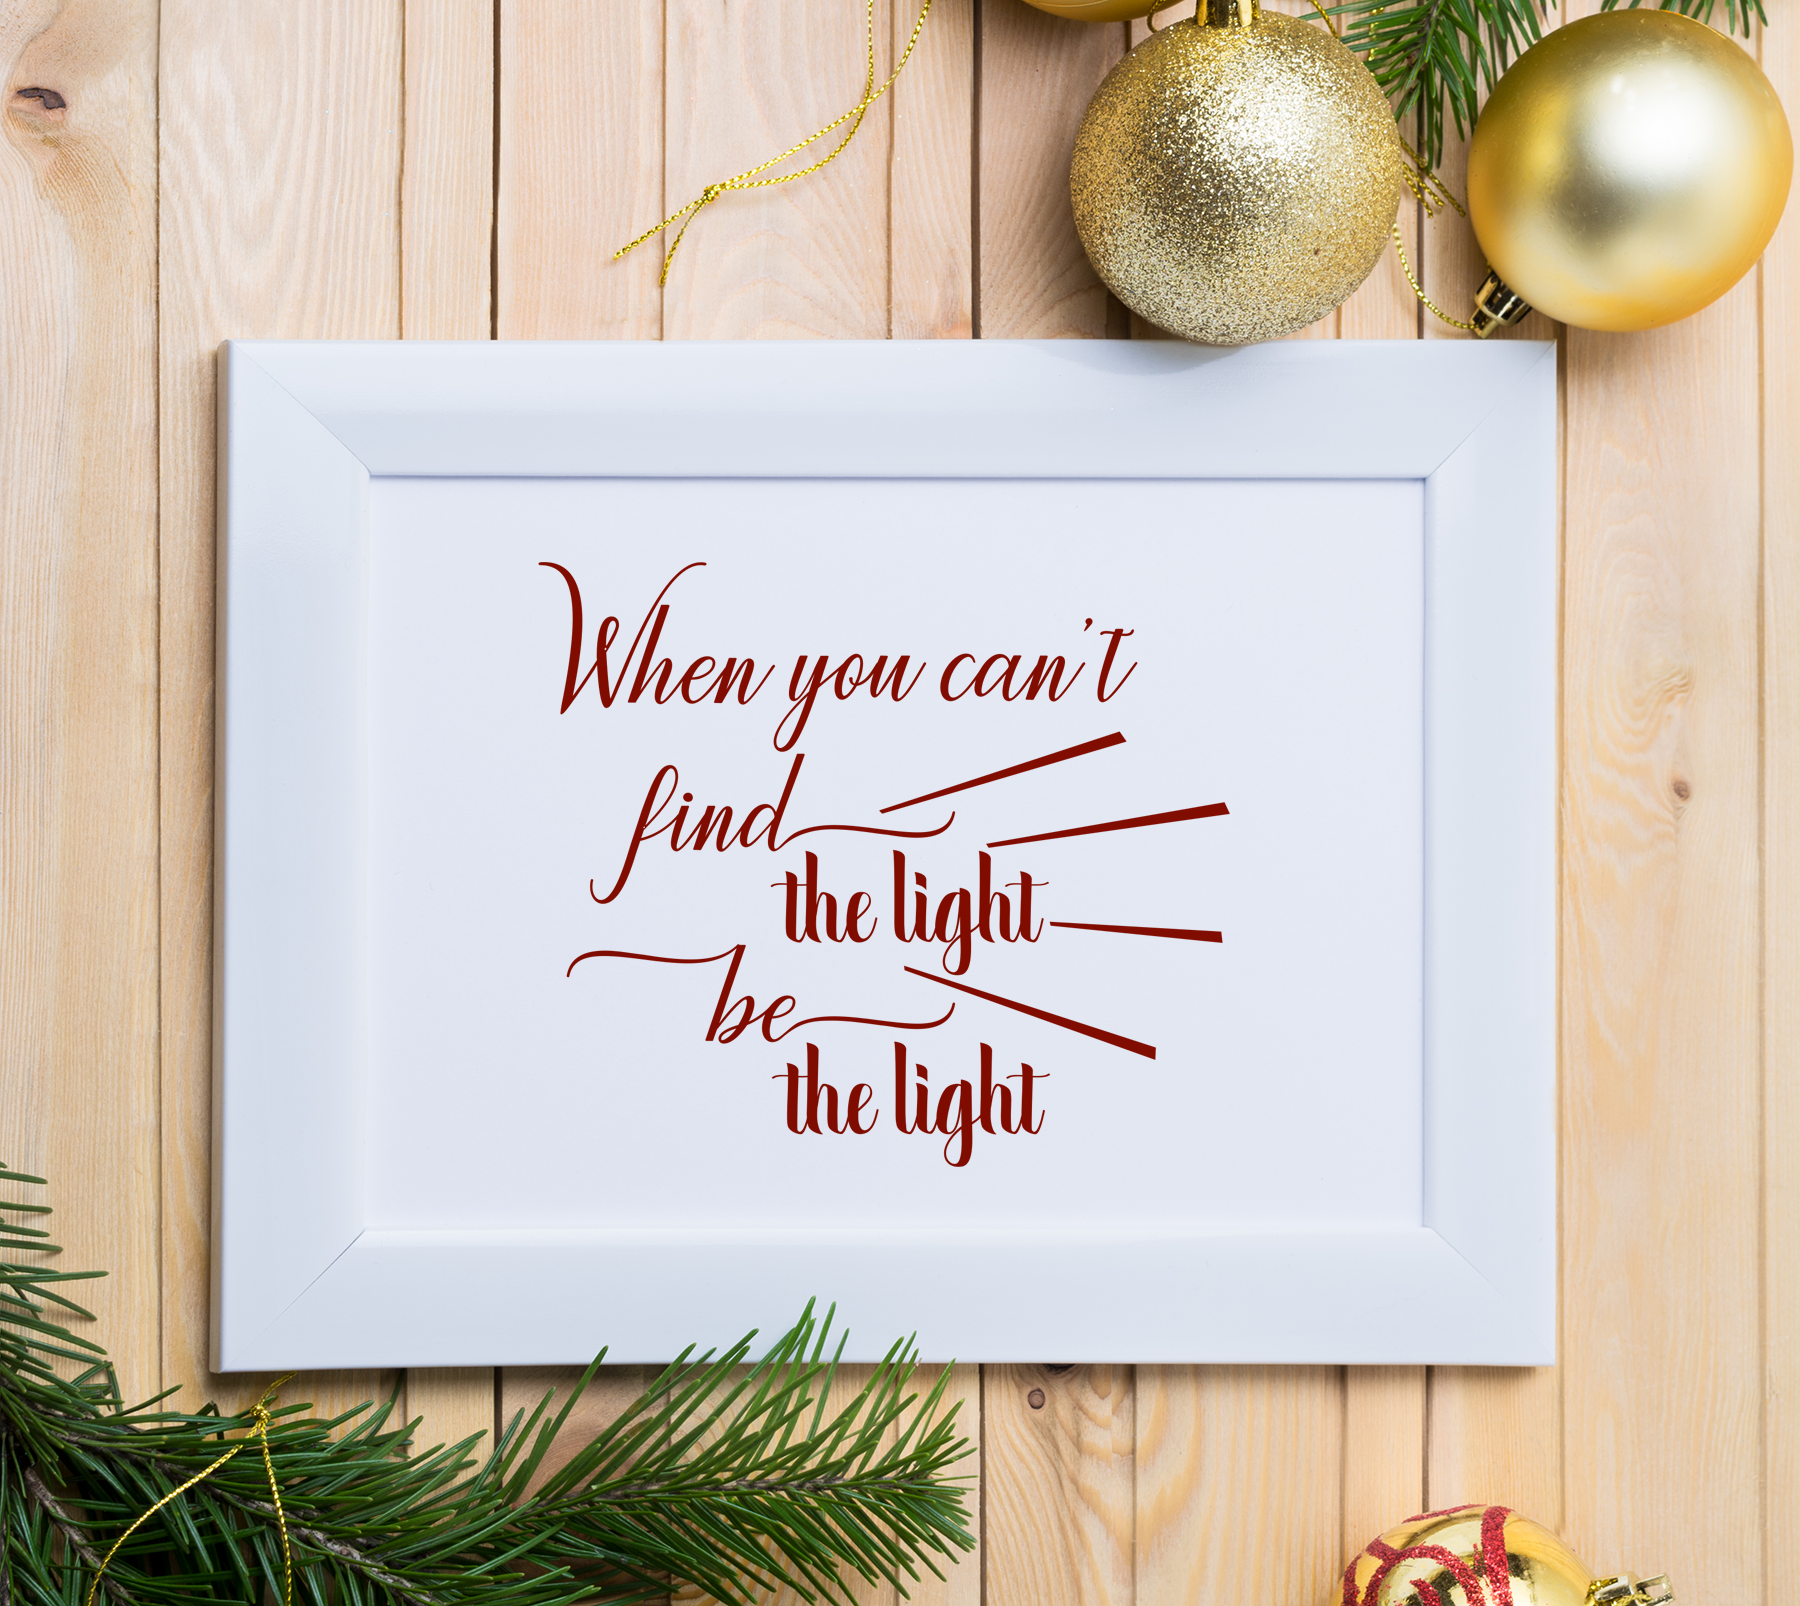 Find the light, be the light, A Motivational SVG Cut File example image 5